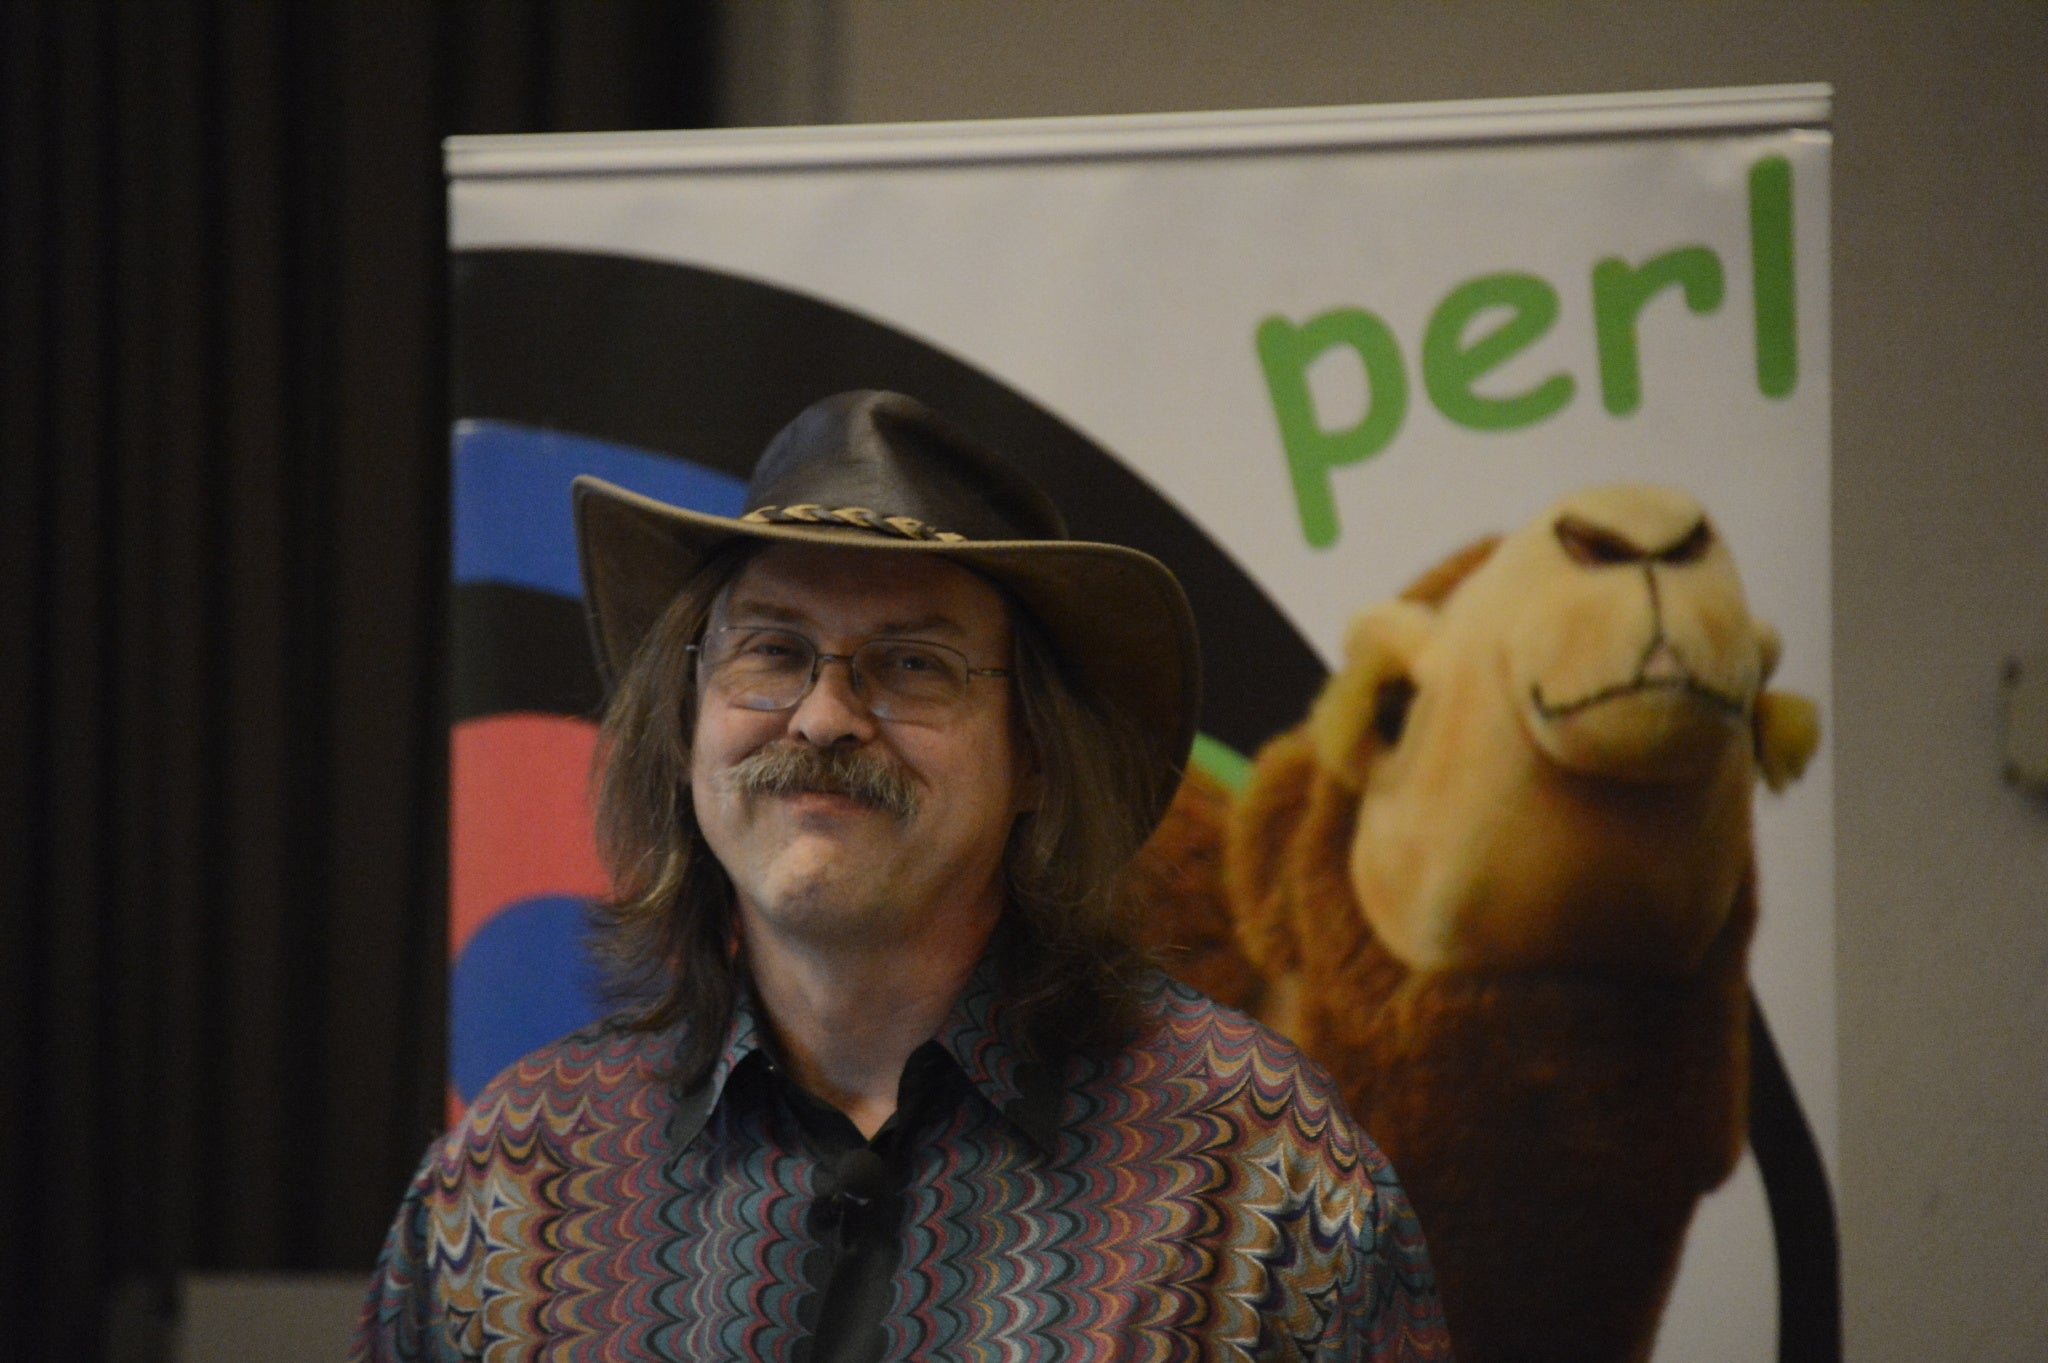 Larry Wall, creator of Perl